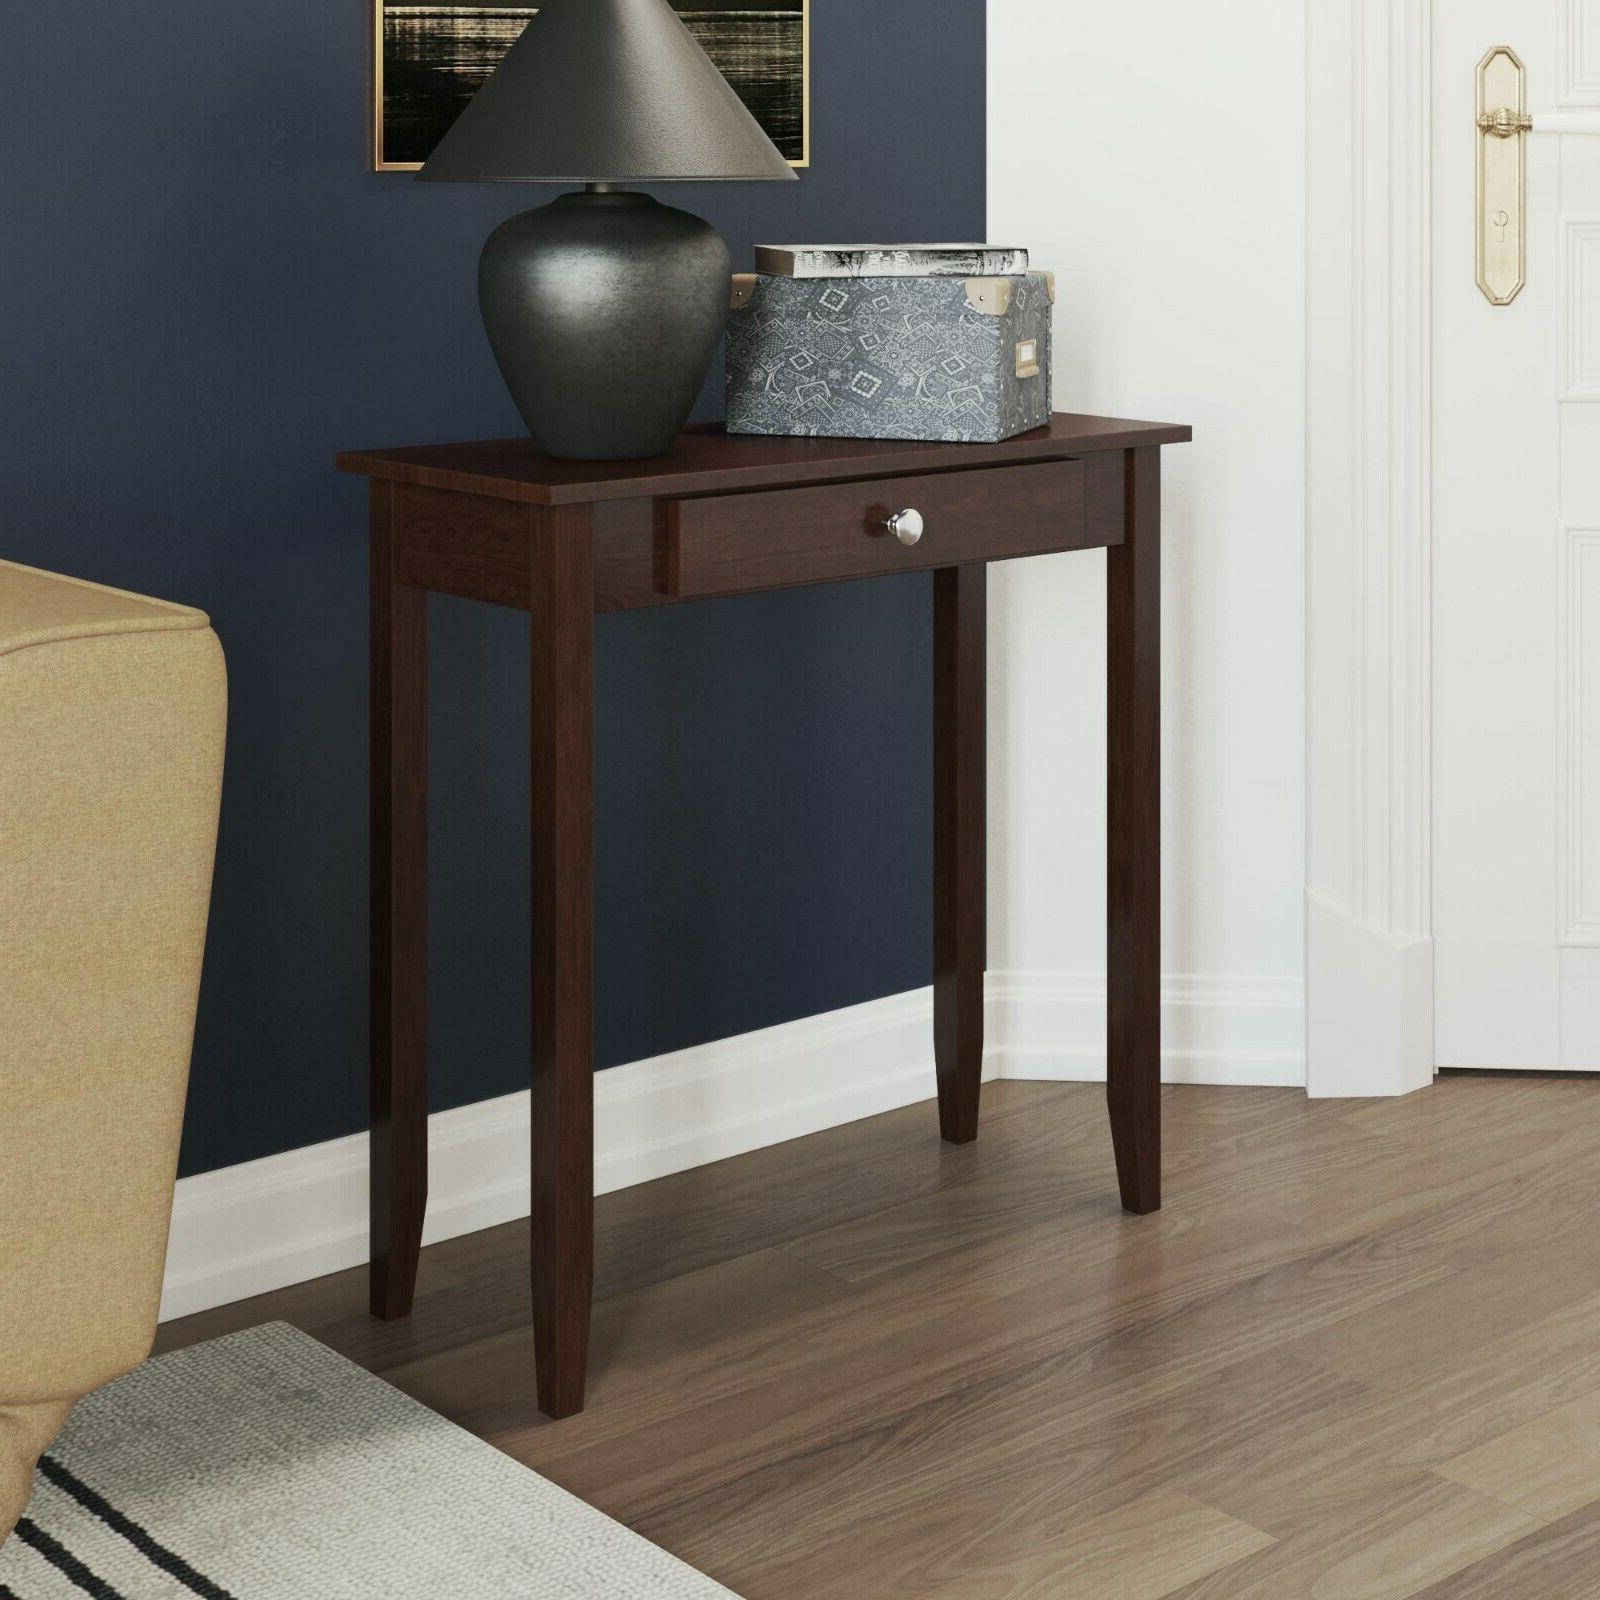 Dhp Rosewood Console Table 5139096